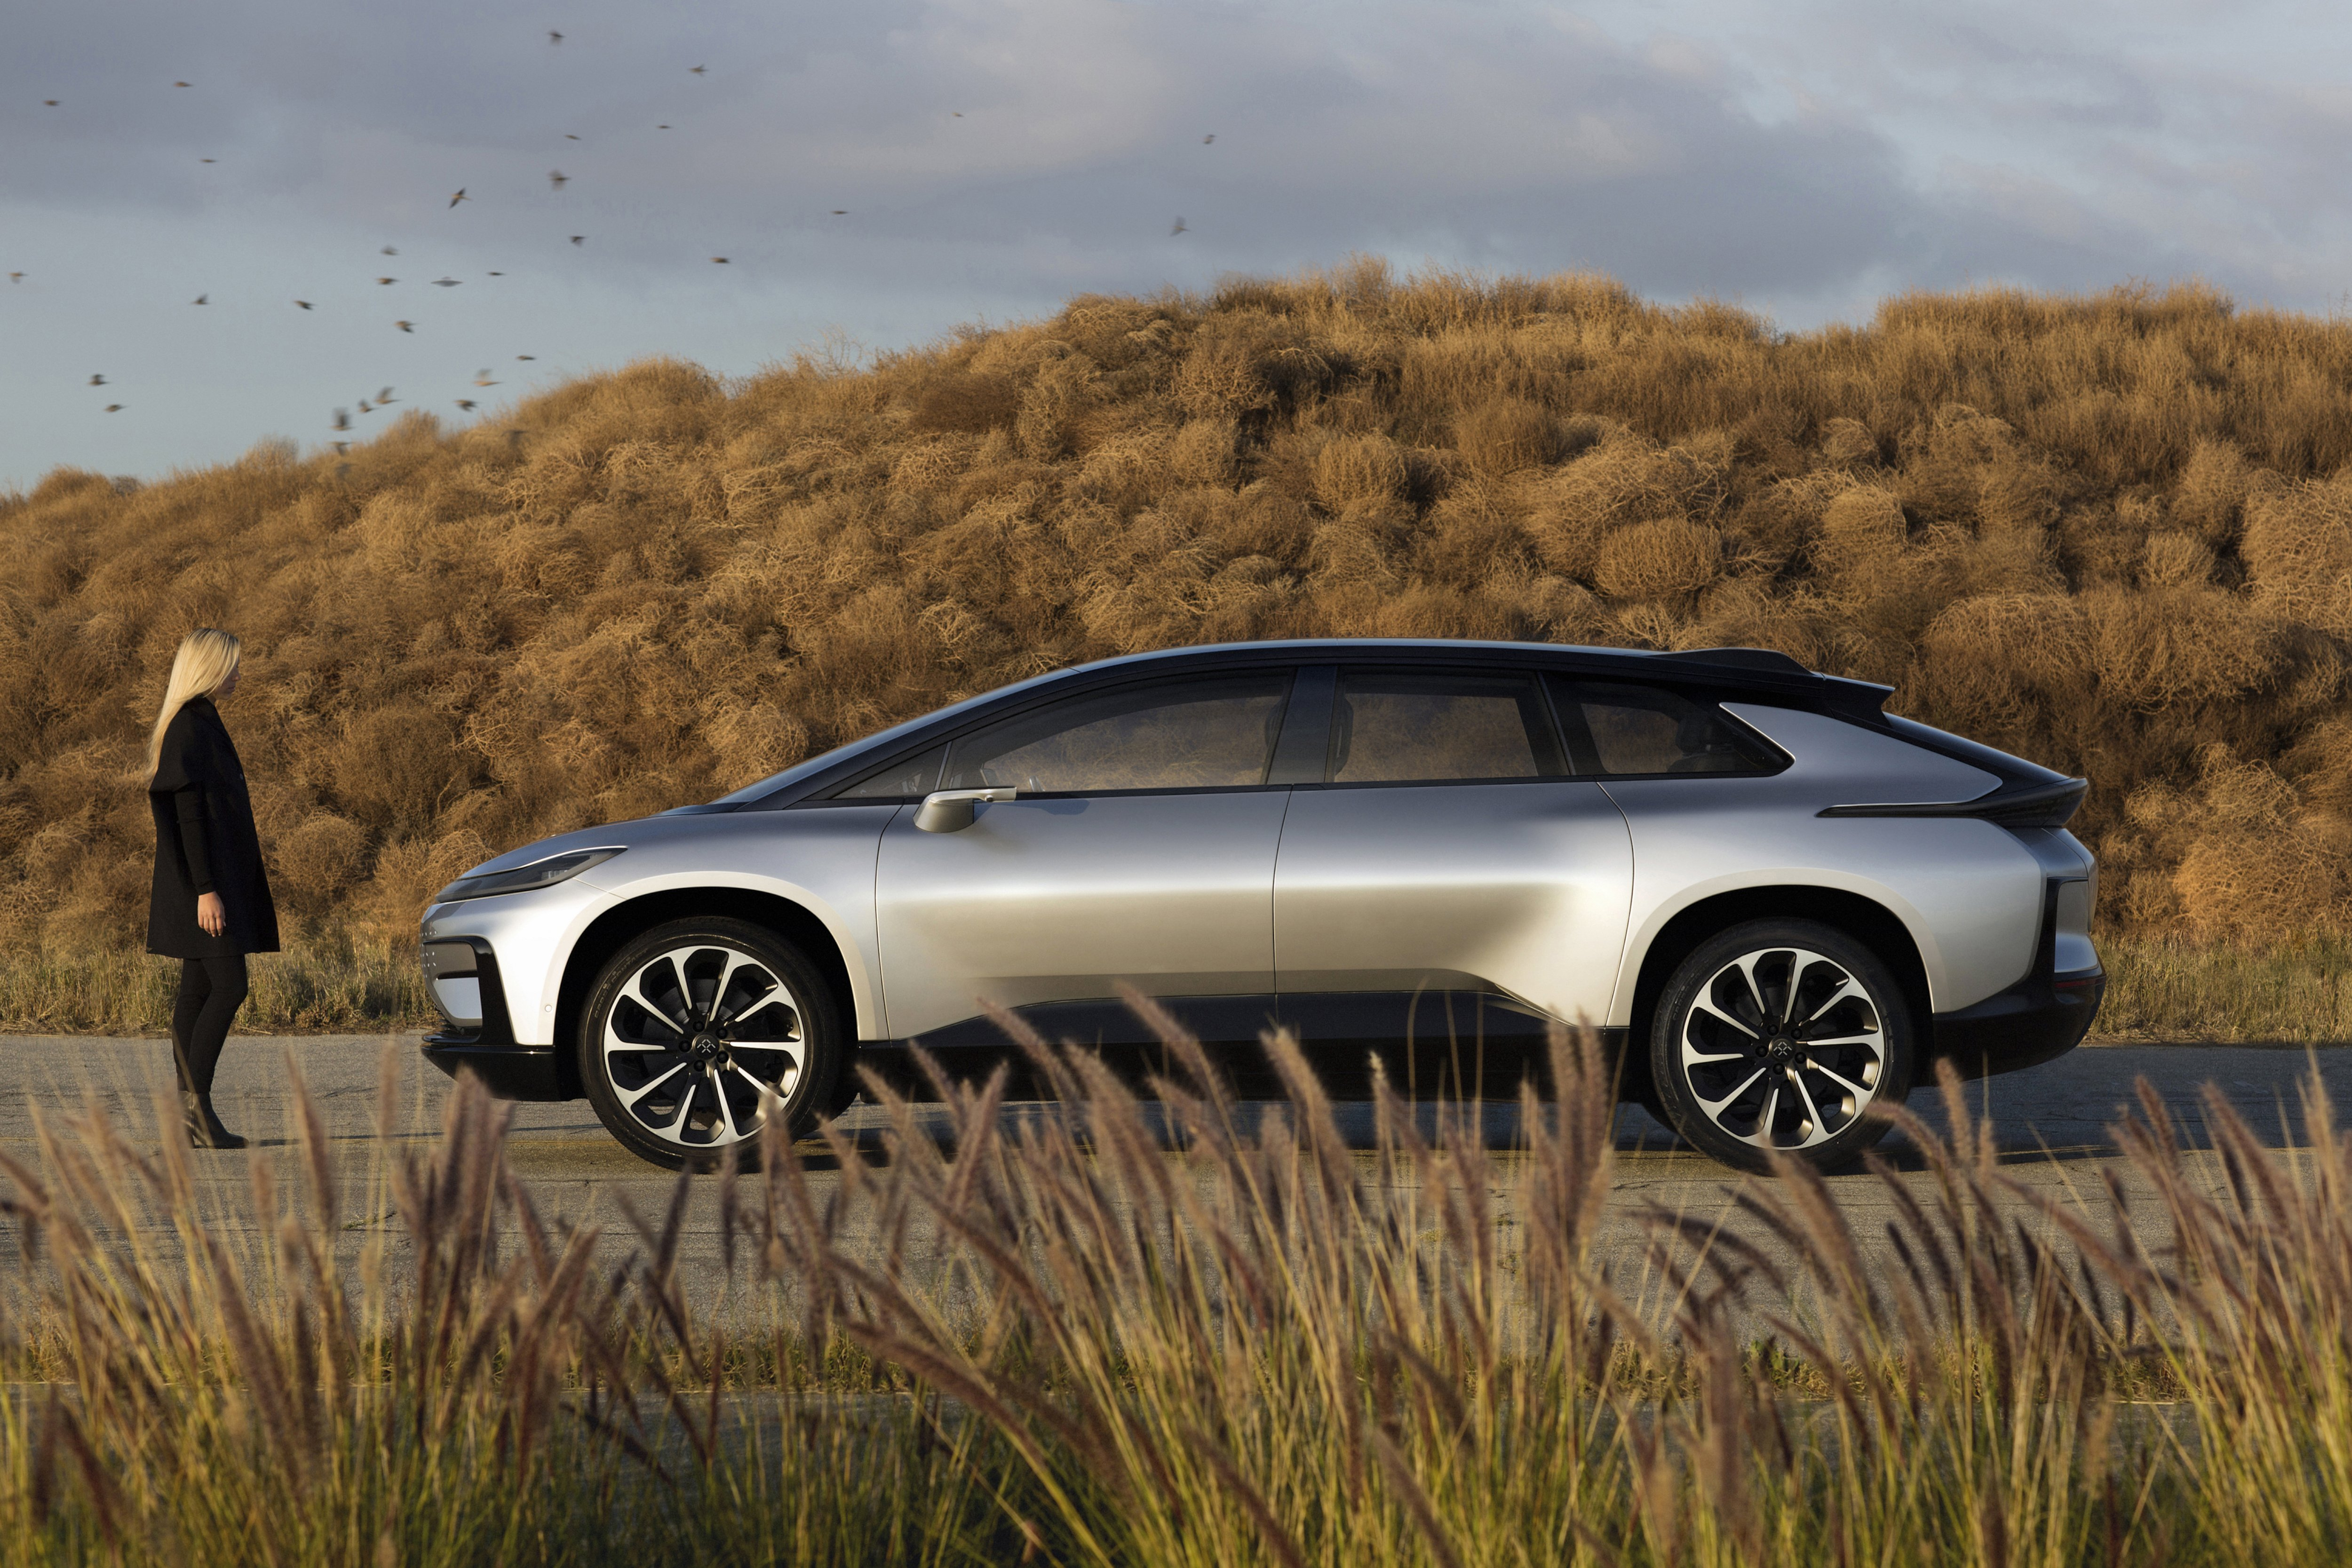 The Faraday Future FF 91 could represent the future of mobility.